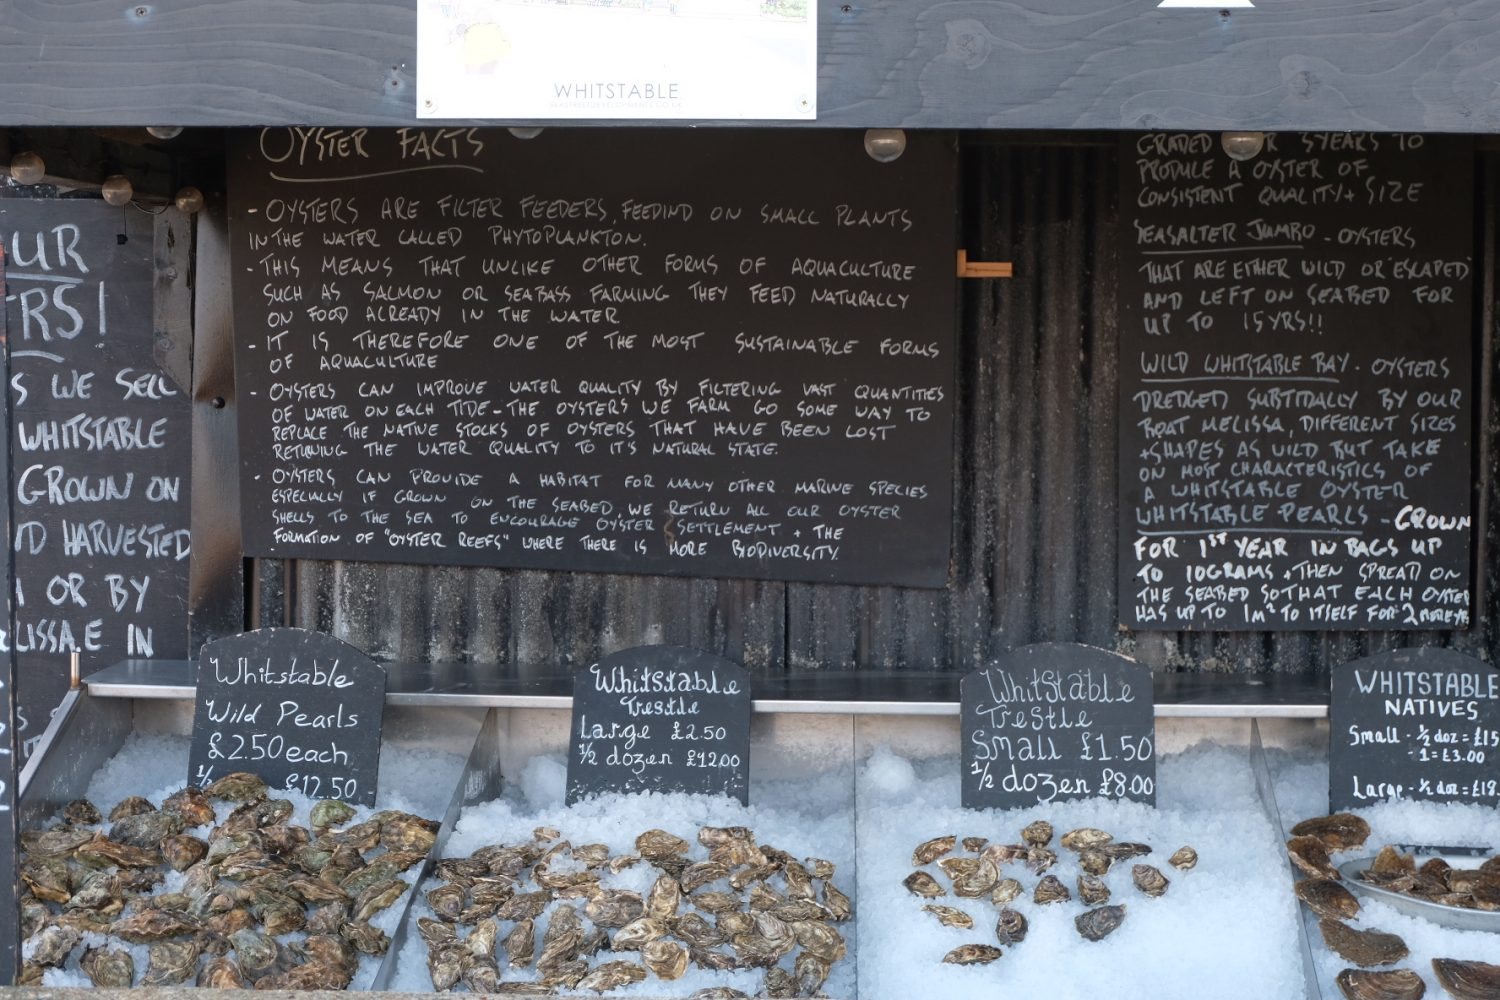 Oysters in Whitstable